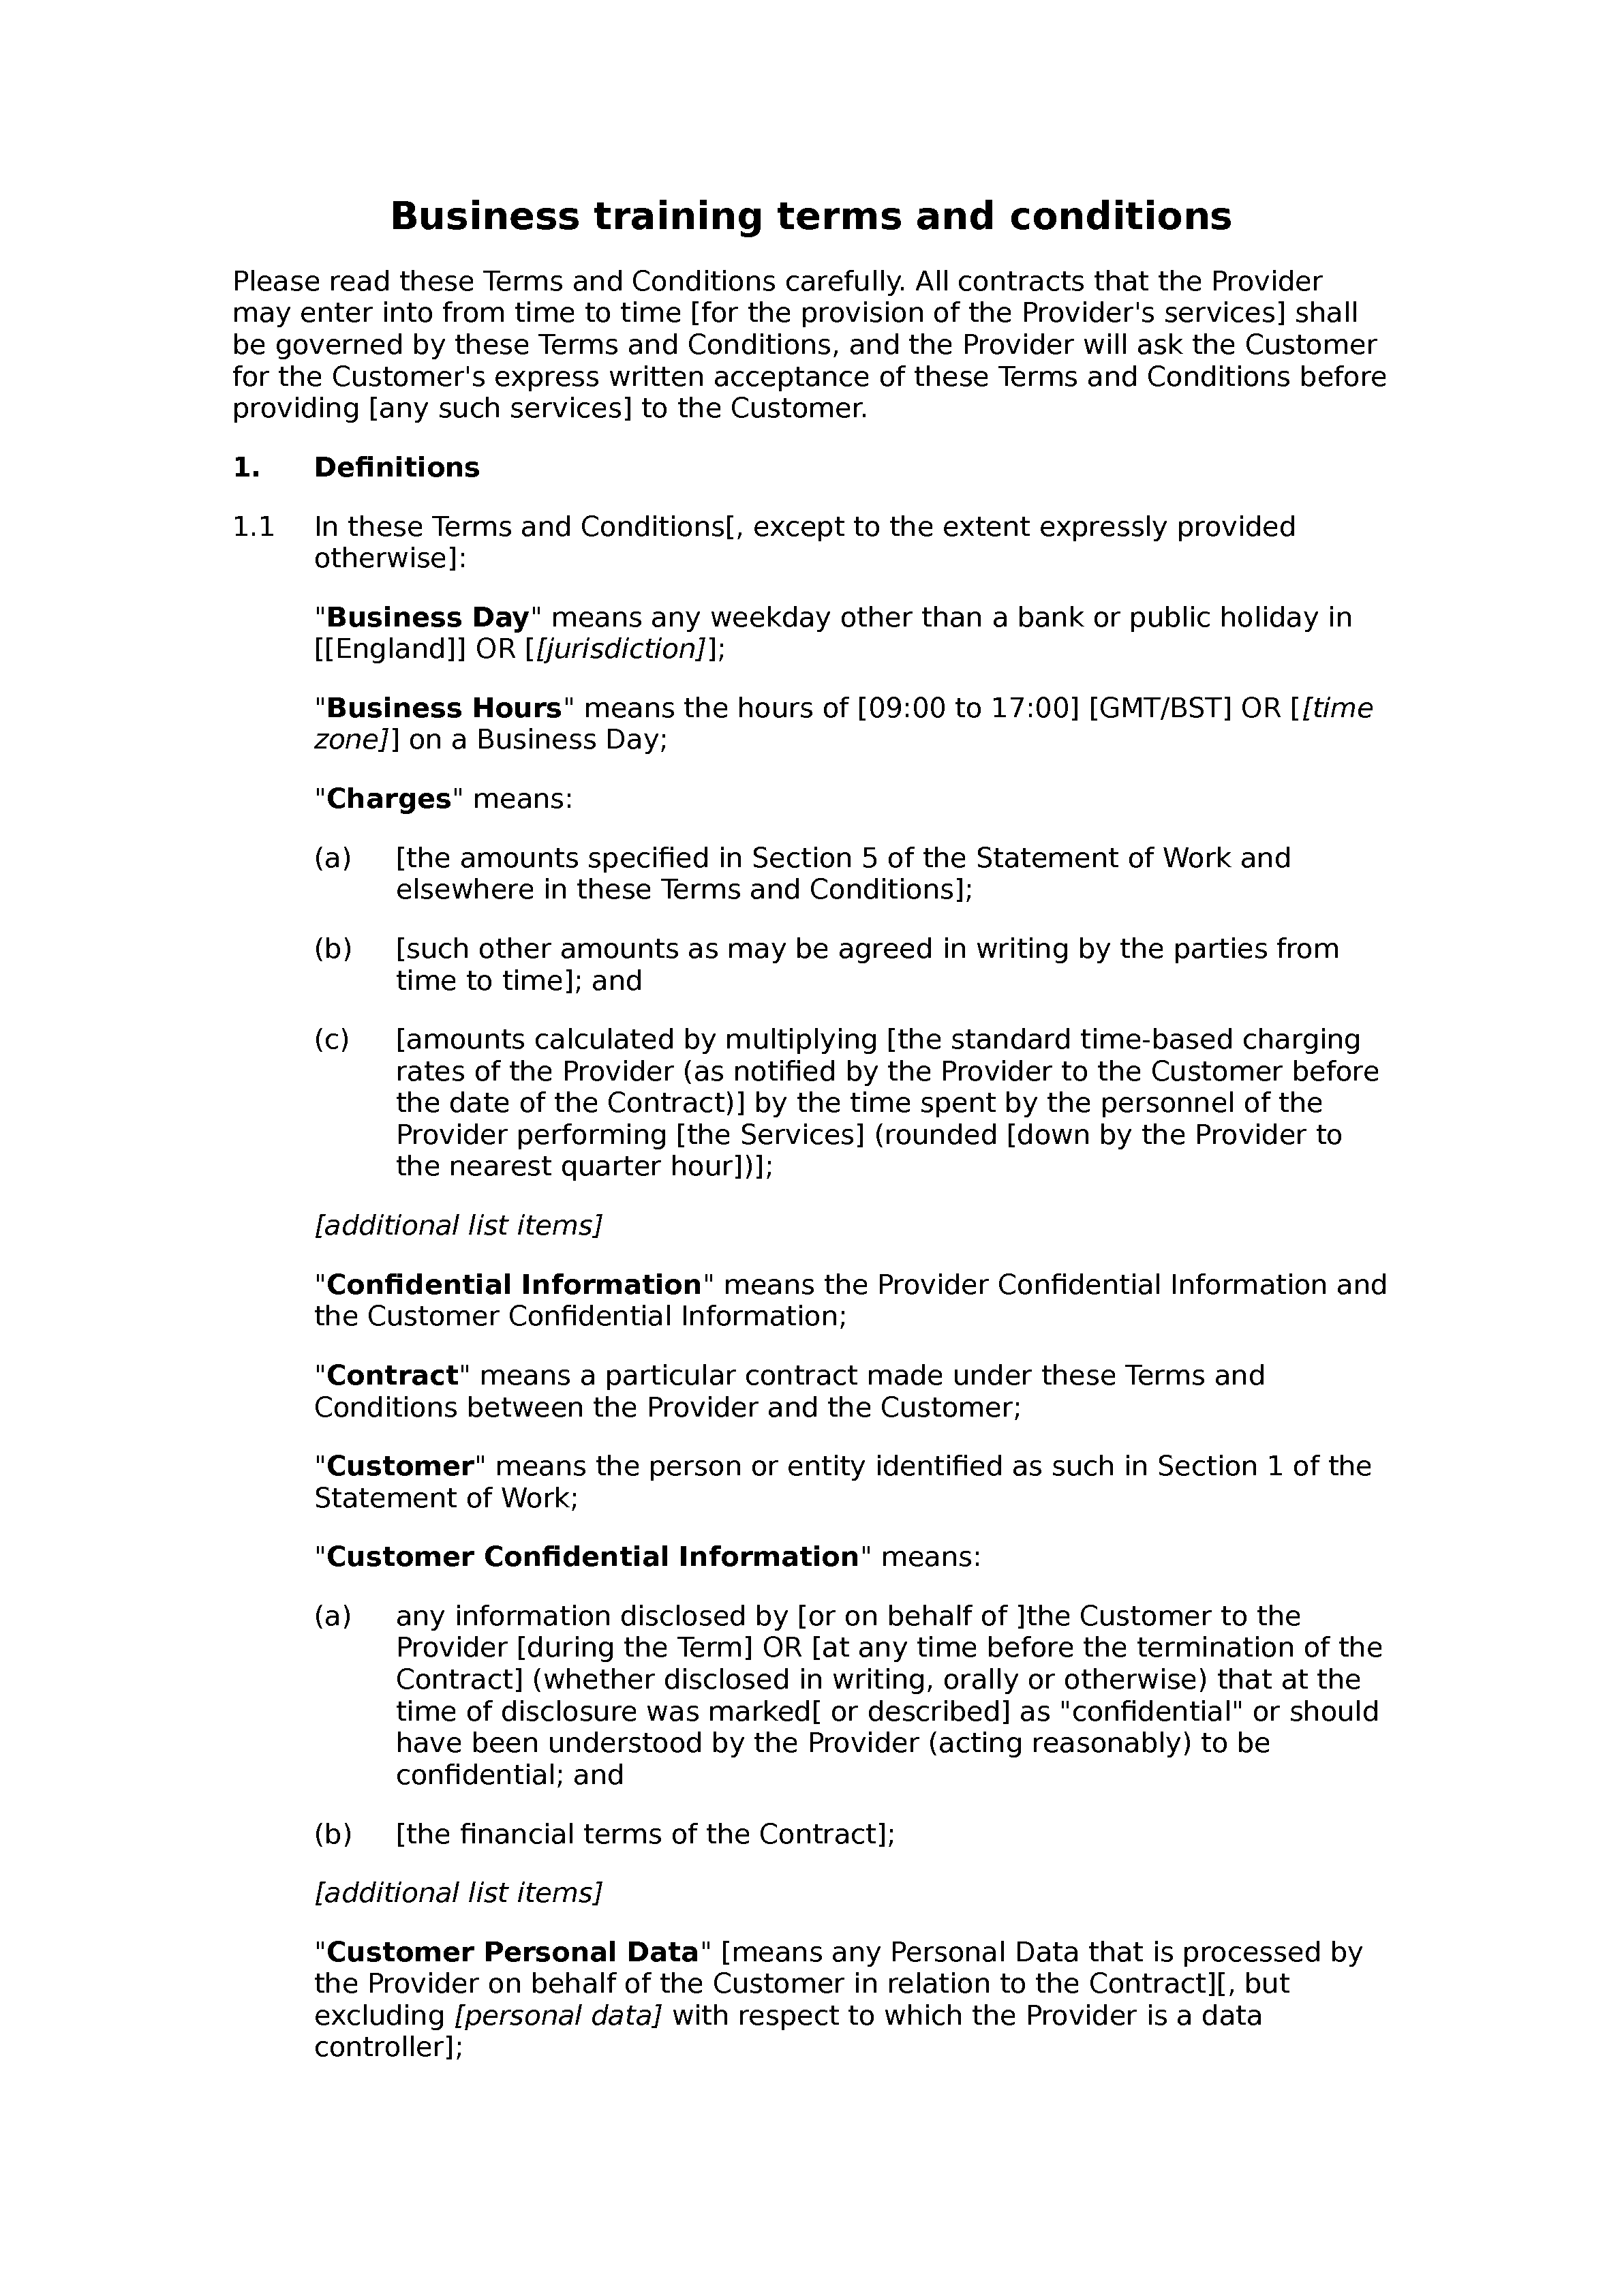 training terms and conditions template - business training terms and conditions docular